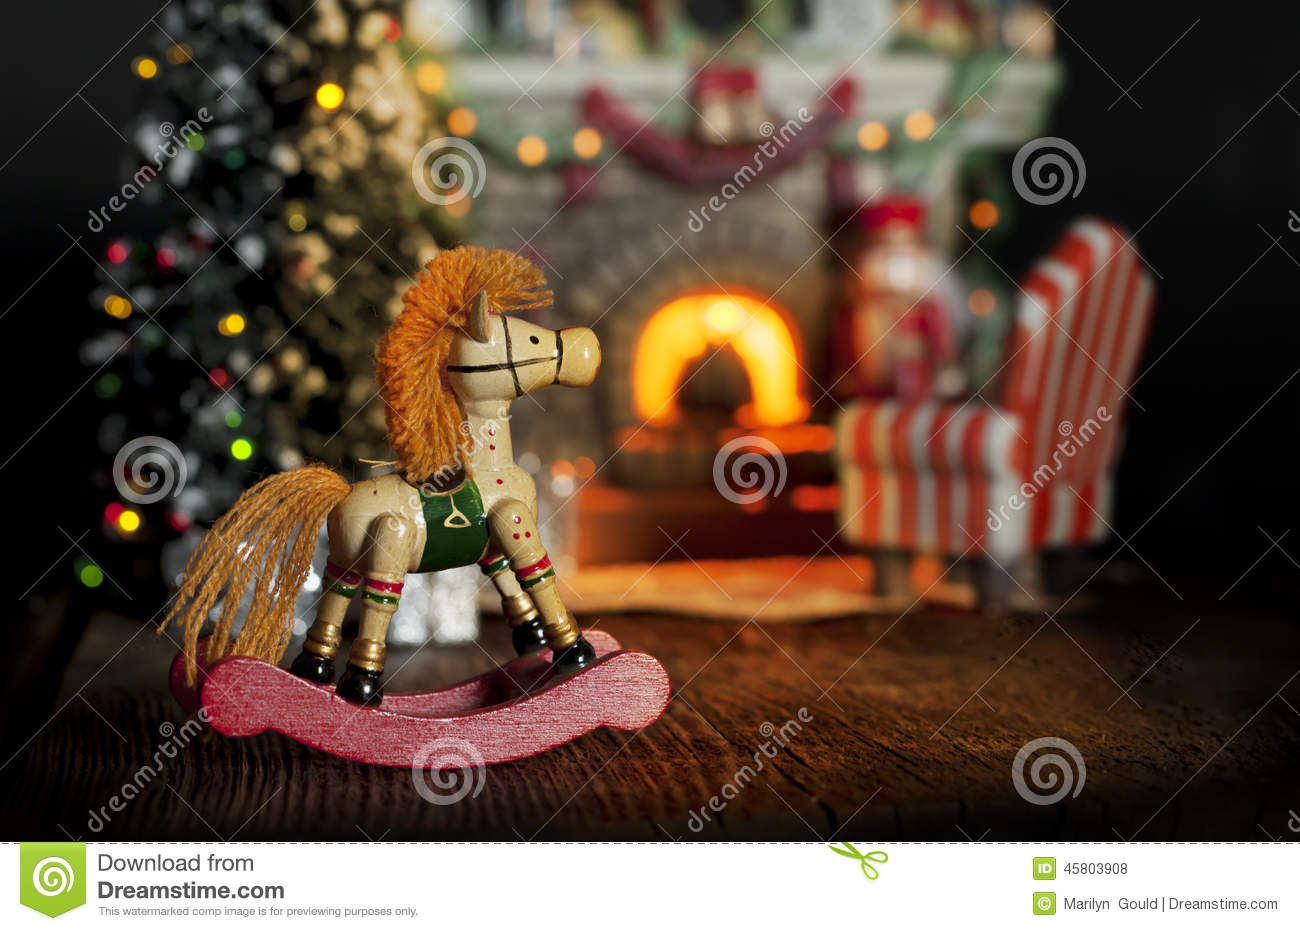 Rocking Horse Christmas Fireplace Stock Photo - Image: 45803908